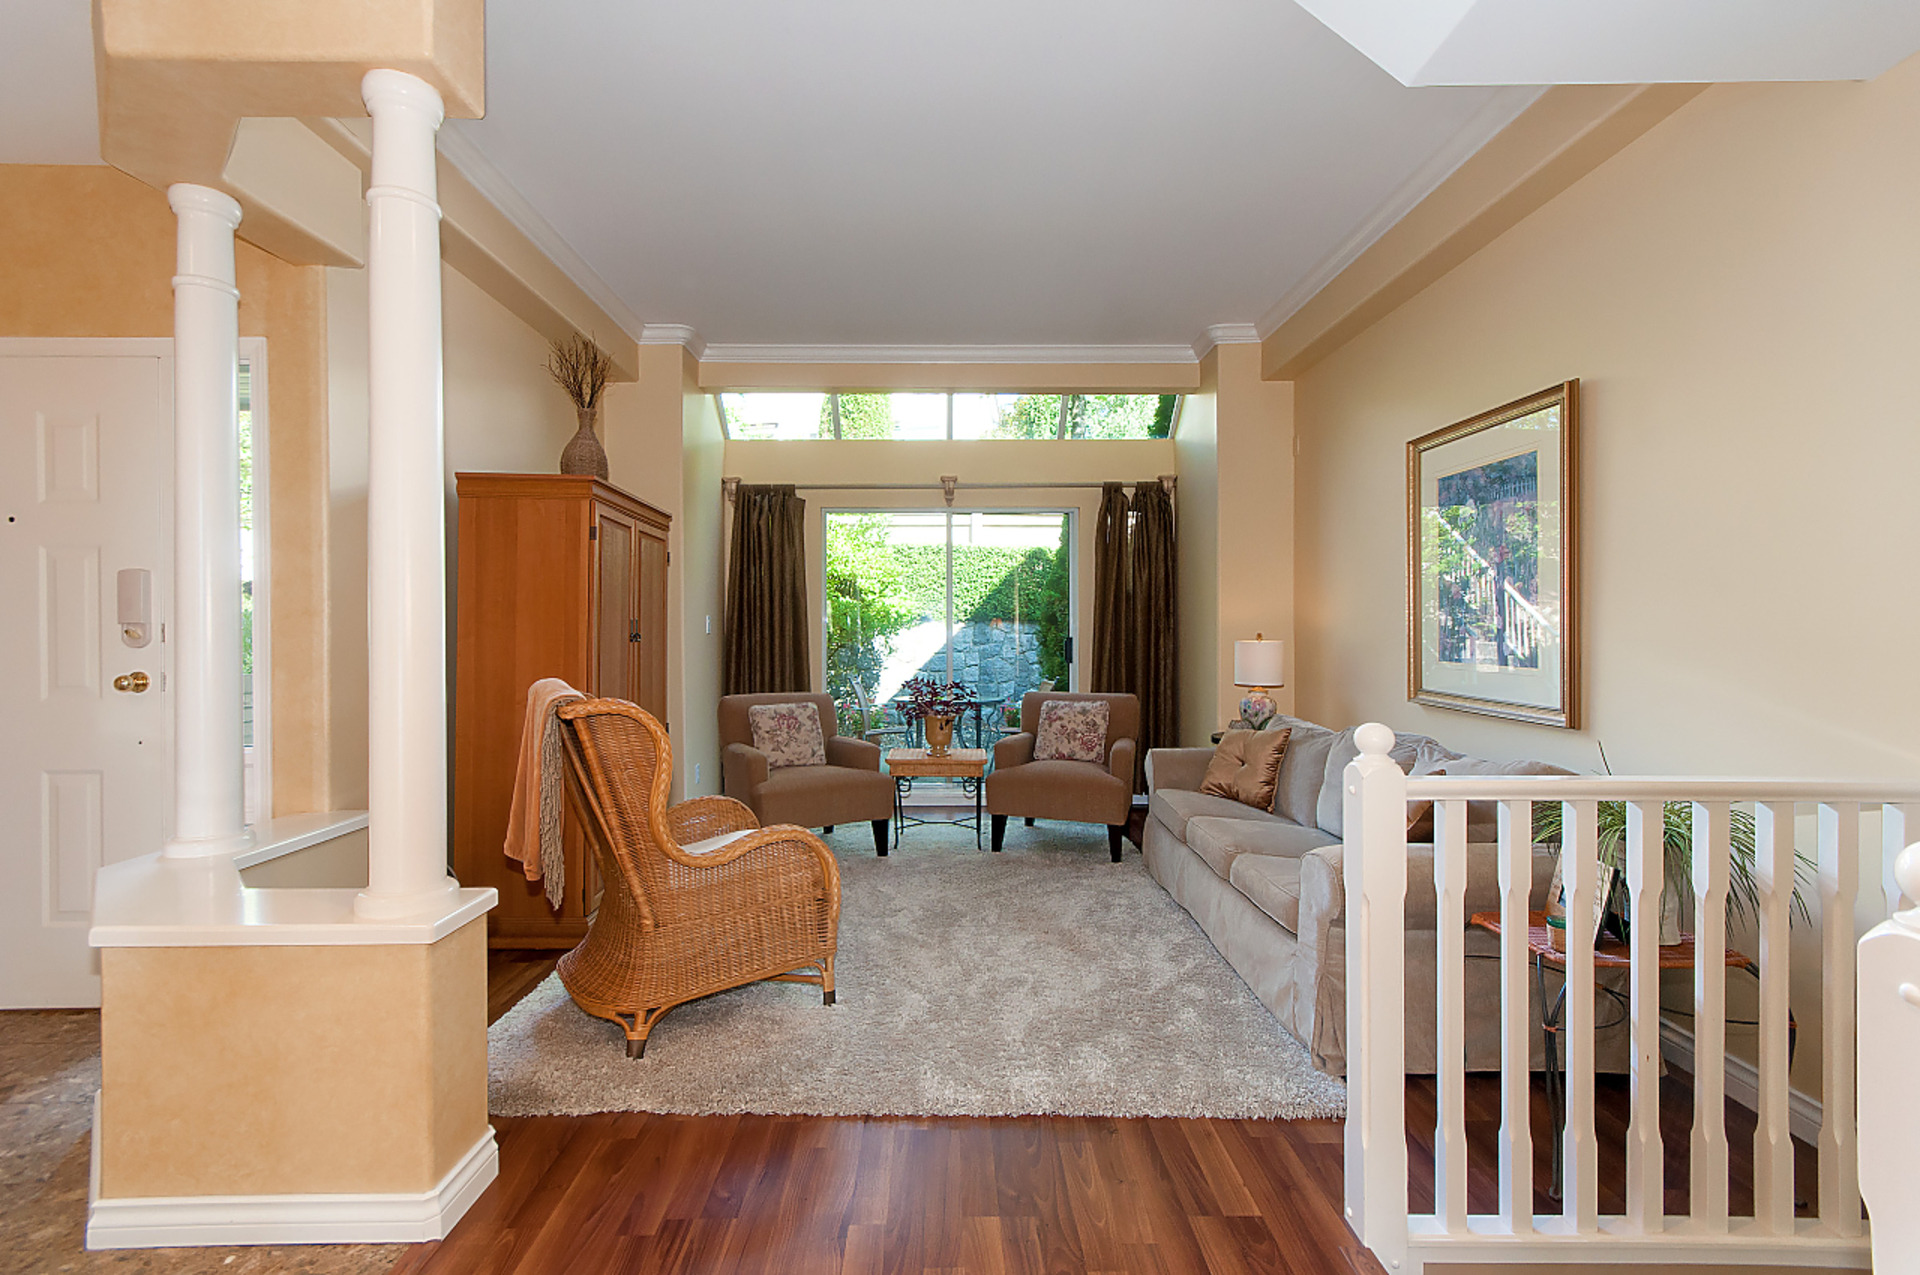 010 at 20 - 1 Aspenwood Drive, Heritage Woods PM, Port Moody